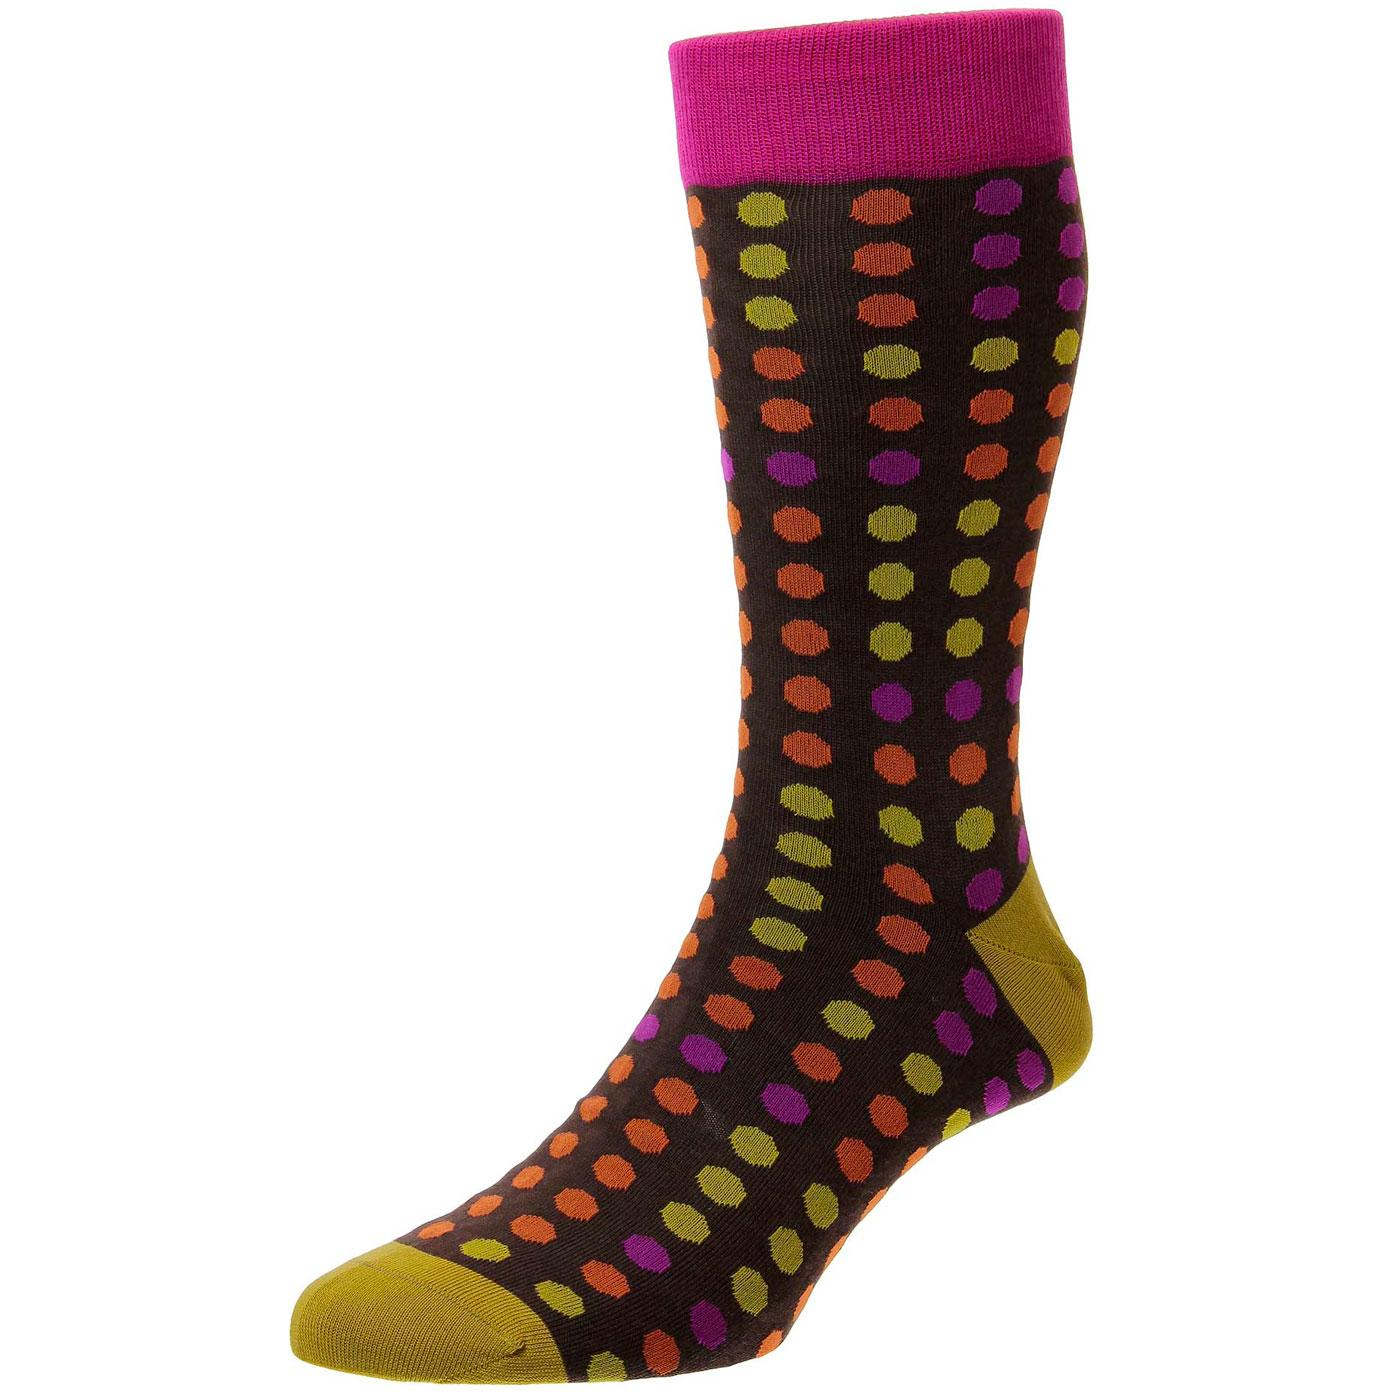 + Simkin PANTHERELLA Retro Polka Dot Socks (Mocha)